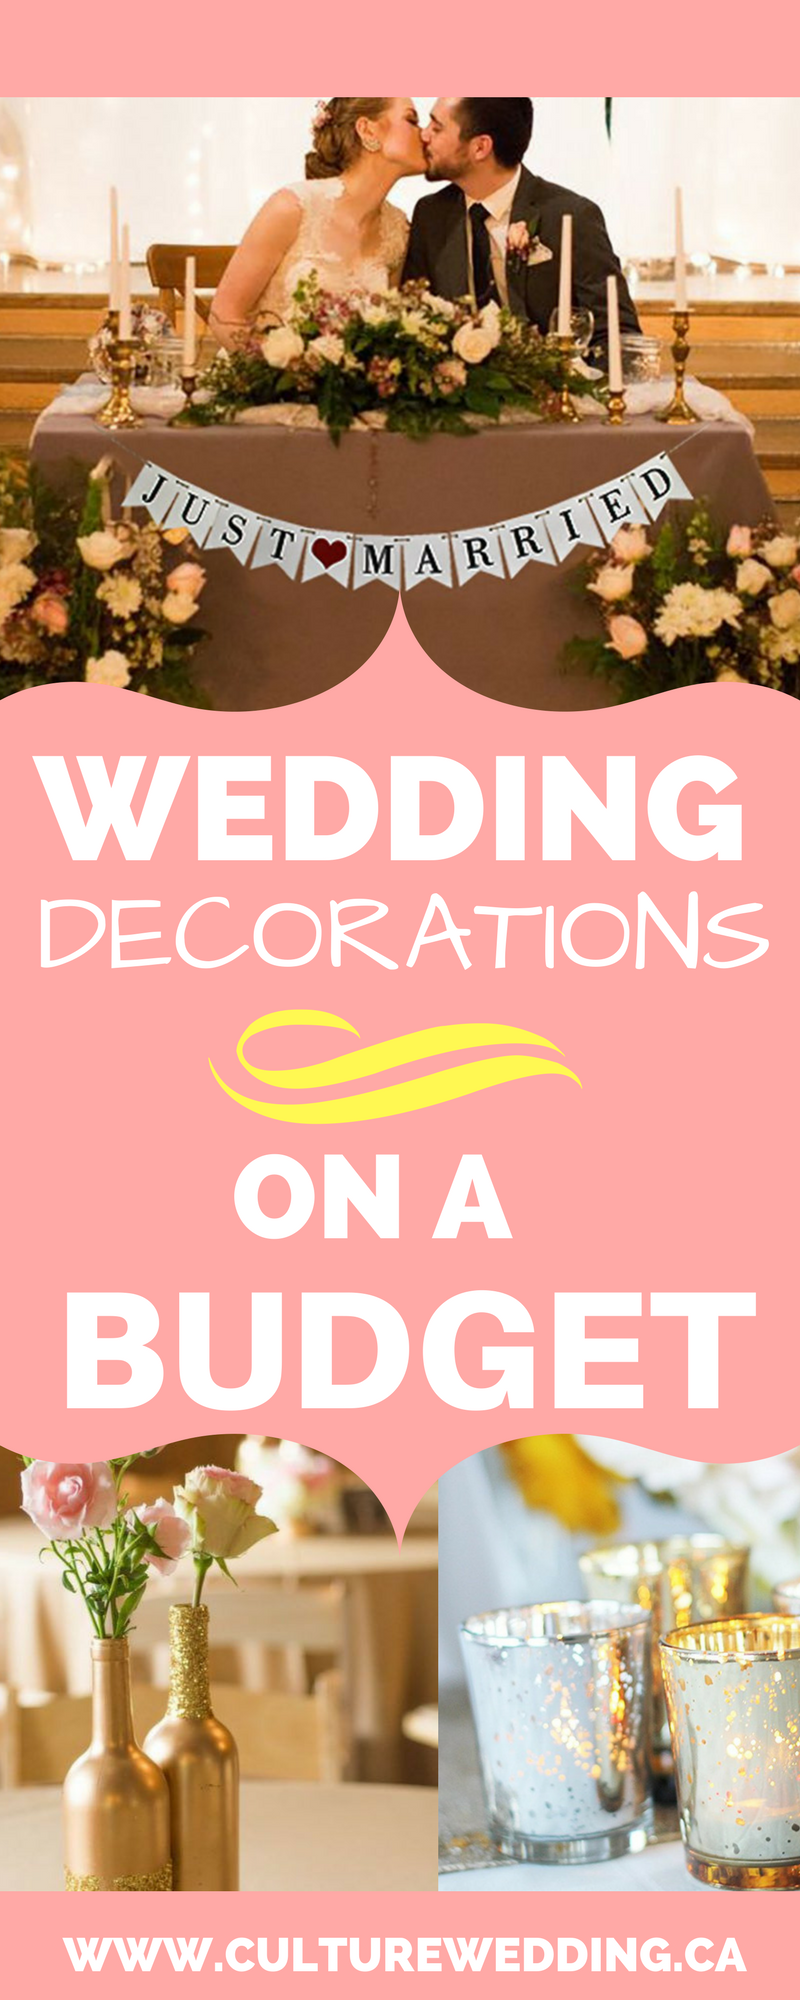 how to get wedding decorations on a budget get them now culture weddings pr firm wedding. Black Bedroom Furniture Sets. Home Design Ideas